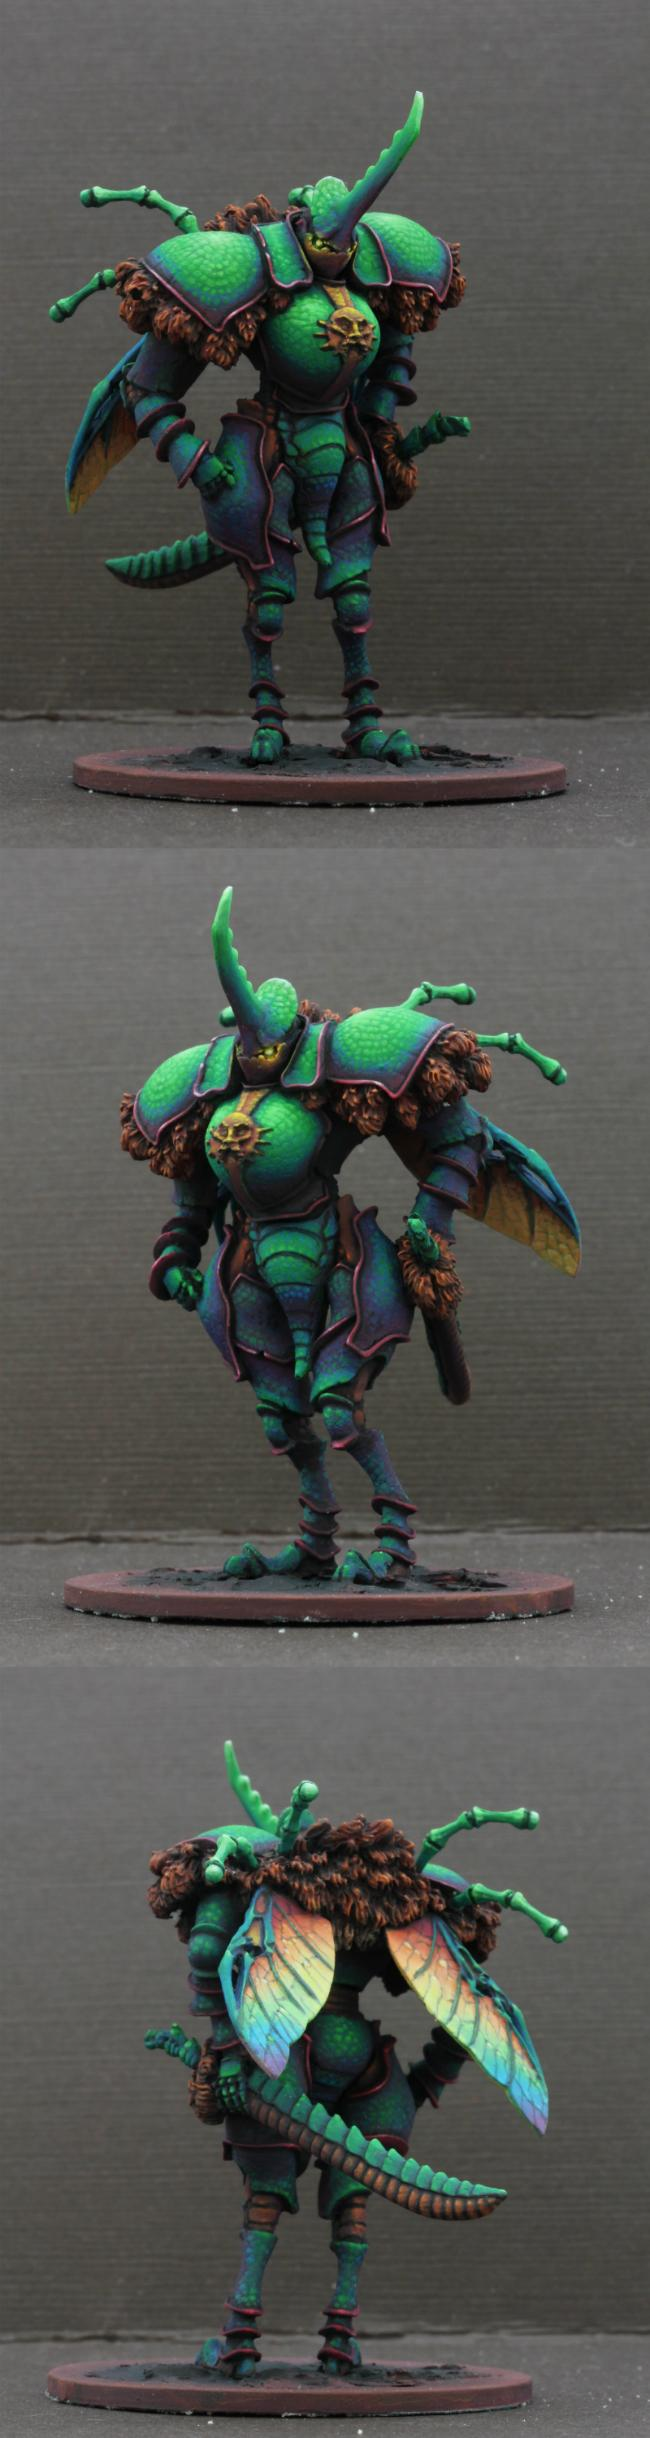 Beetle, Boardgame, Game, Gothic, Horrors, Insect, Kingdom Death, Knights, Role